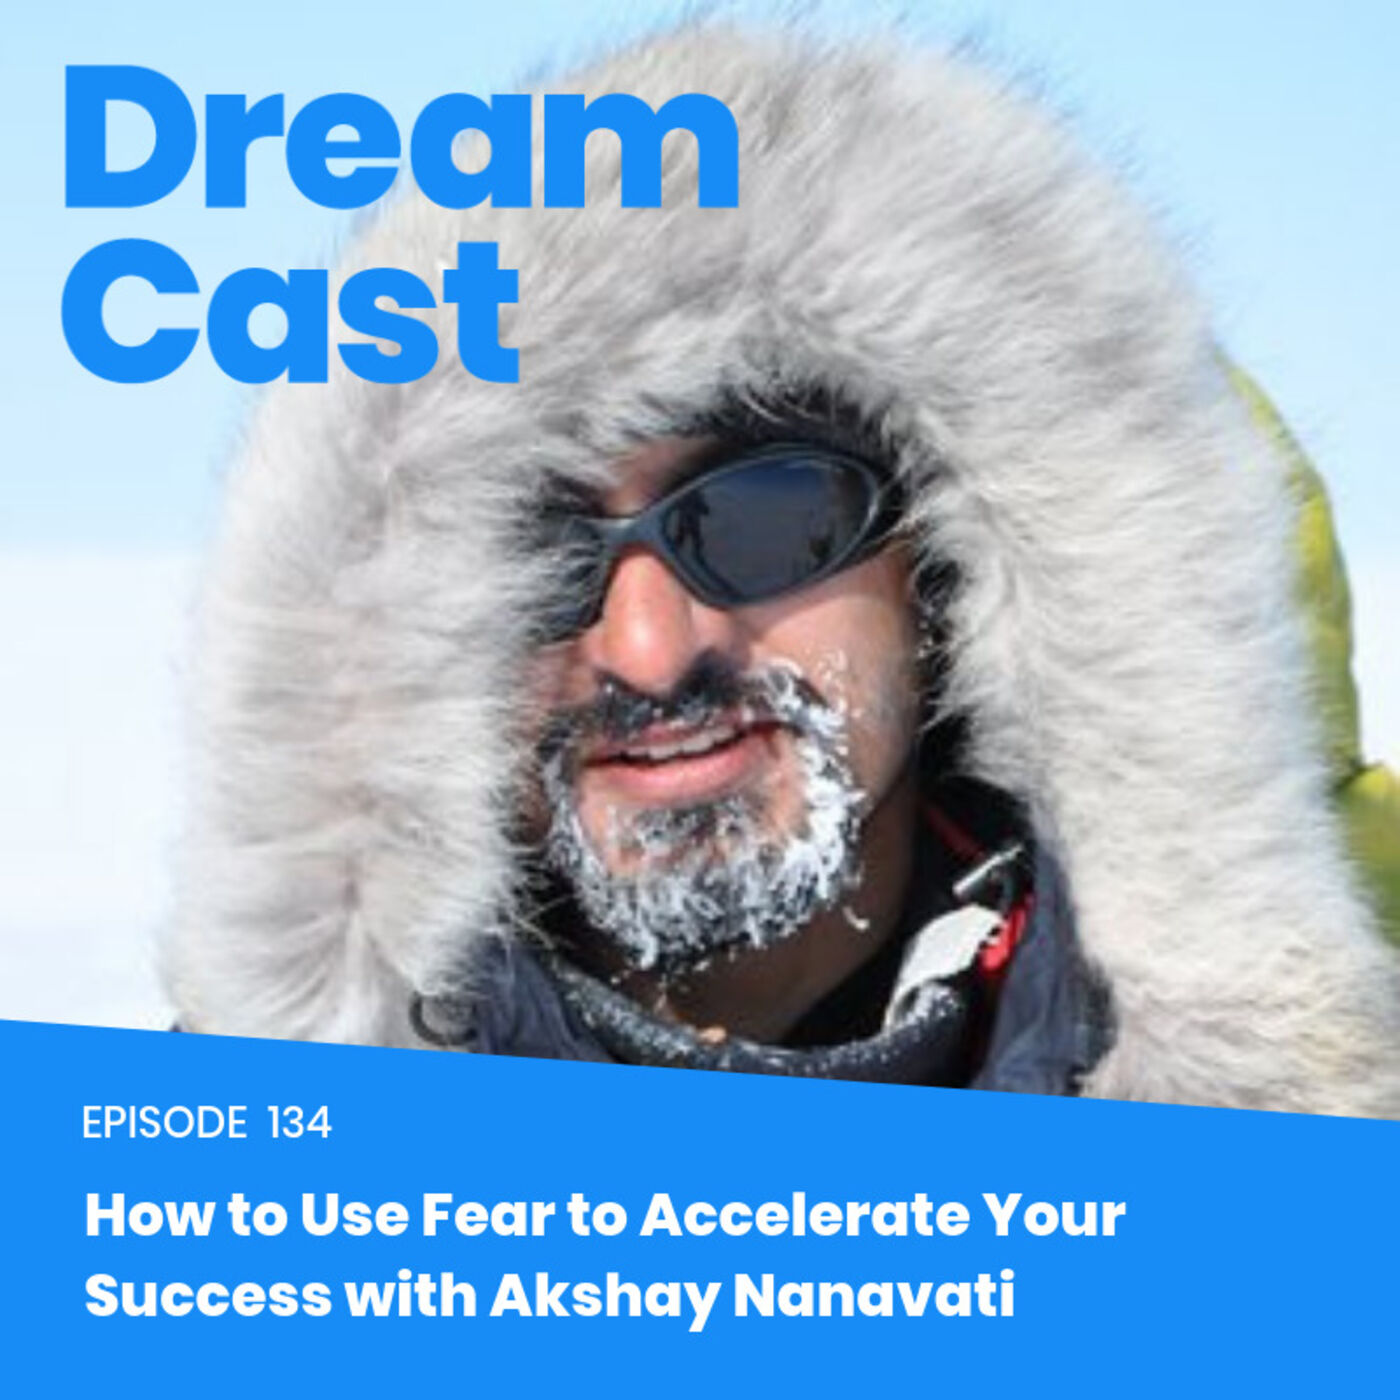 Episode 134 - How to Use Fear to Accelerate Your Success with Akshay Nanavati